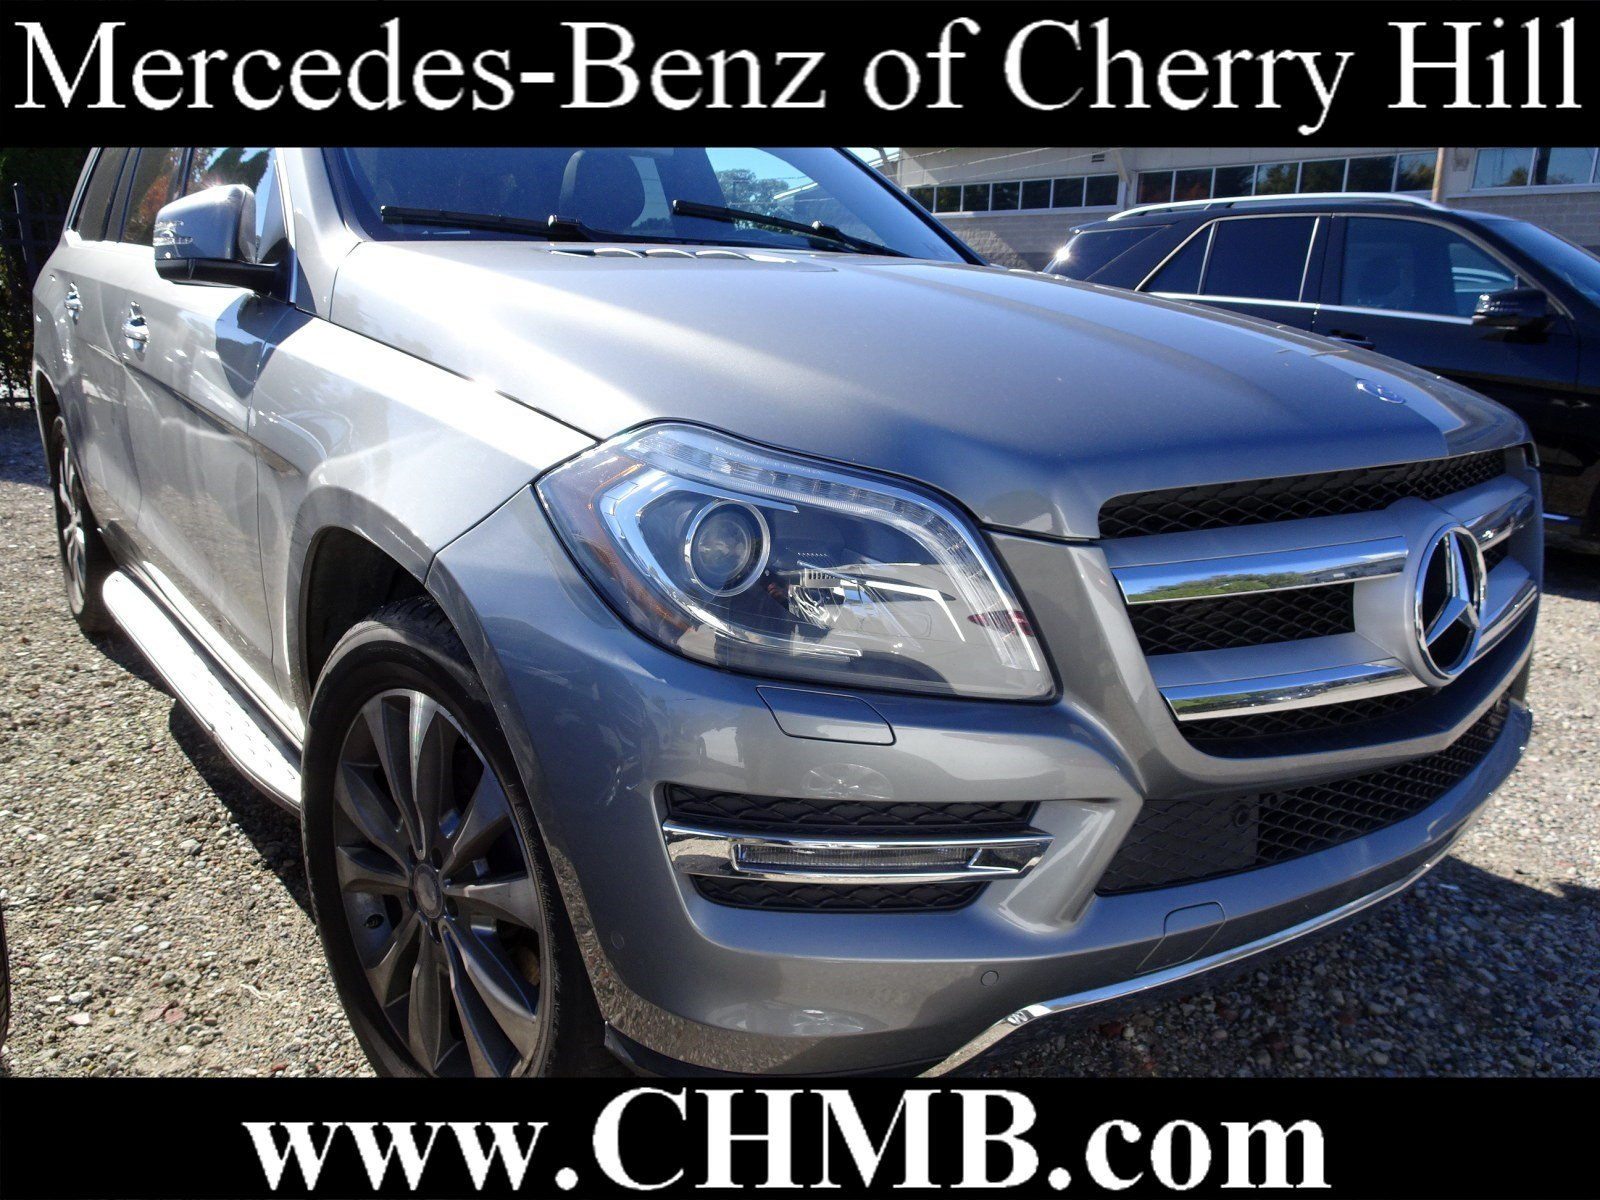 Pre Owned 2016 Mercedes Benz GL GL 450 SUV in Cherry Hill M2407A